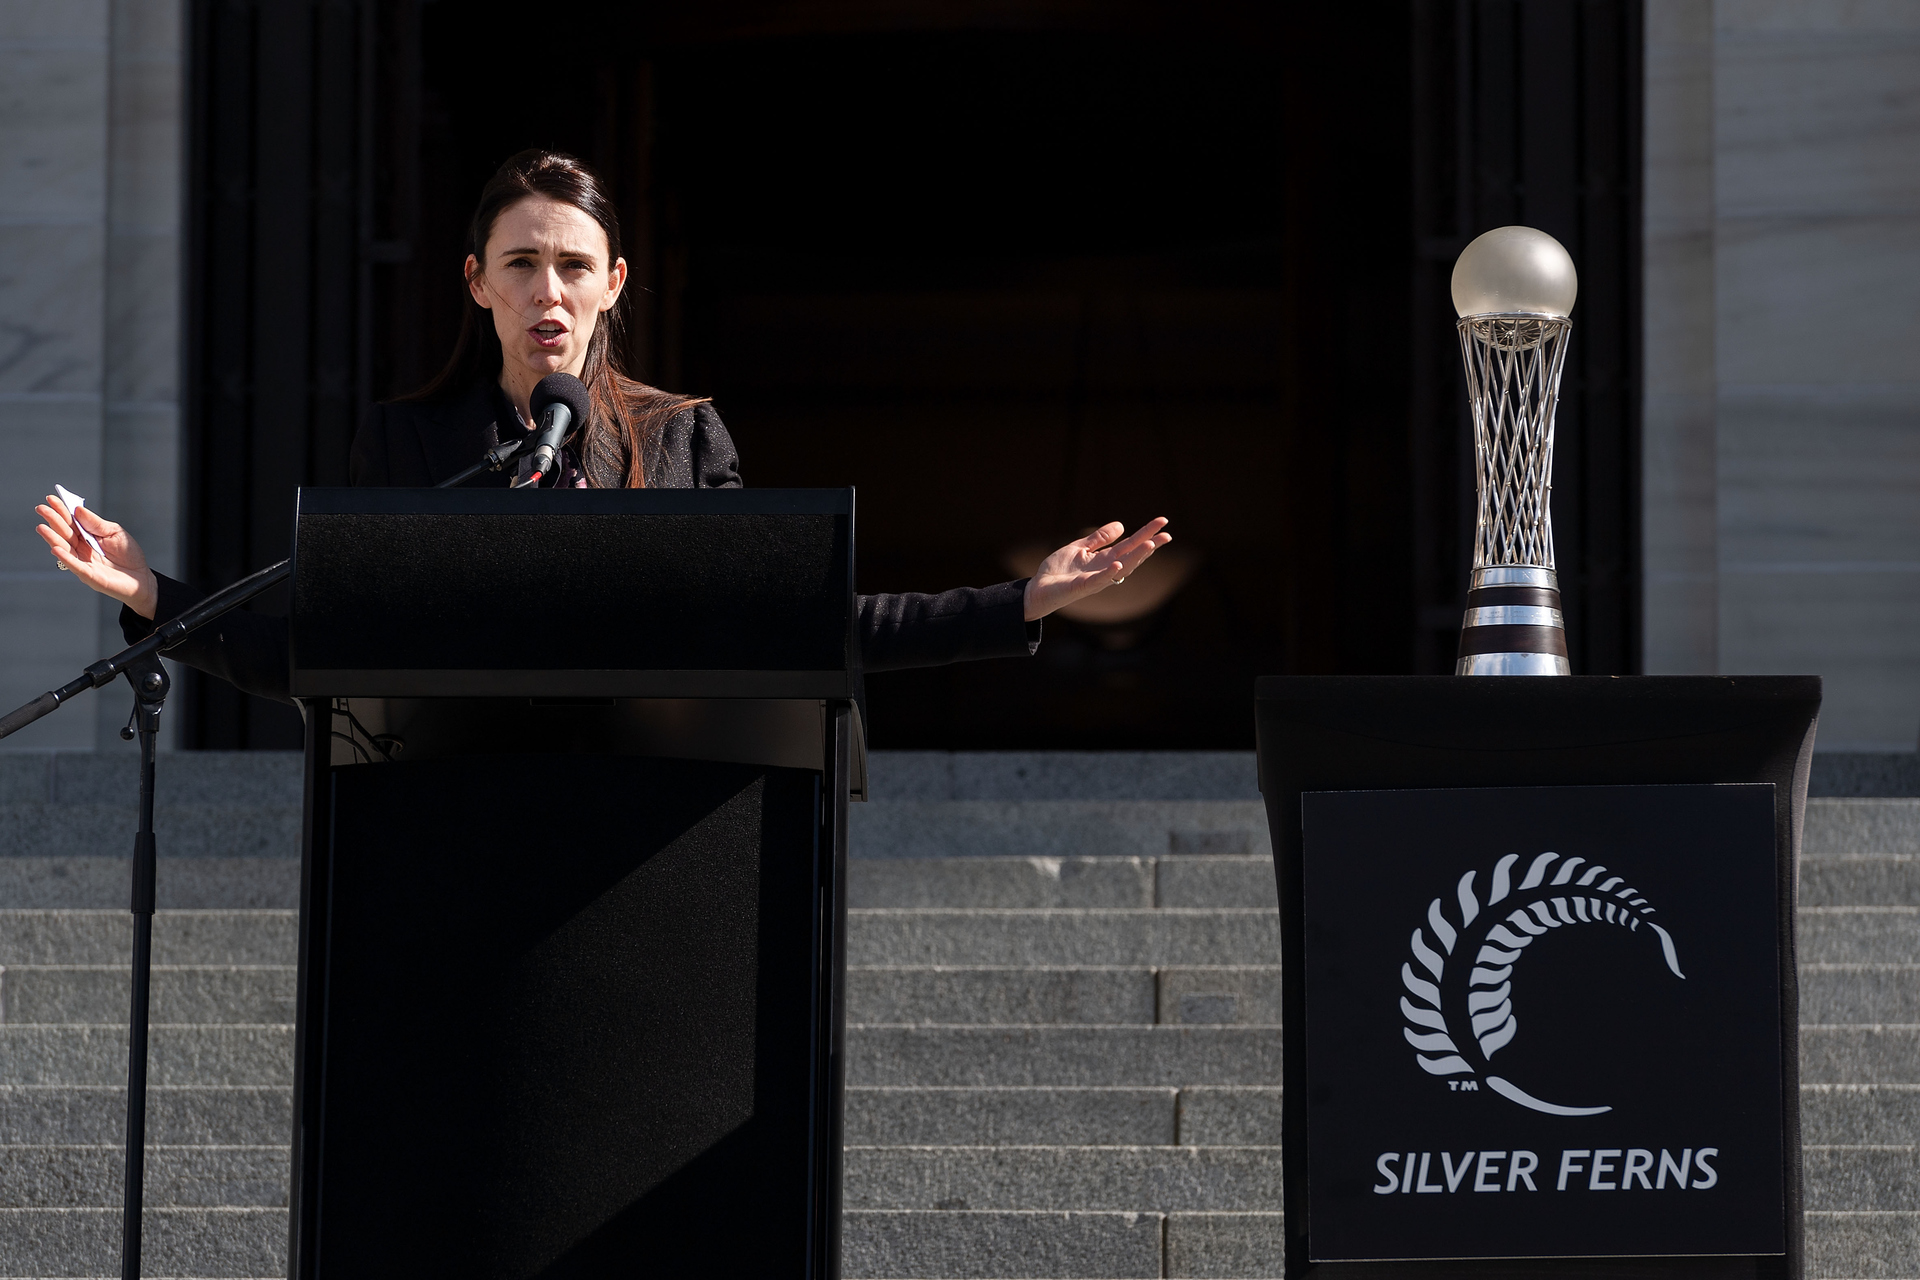 'You're incredible!' – PM's welcome to champion Silver Ferns